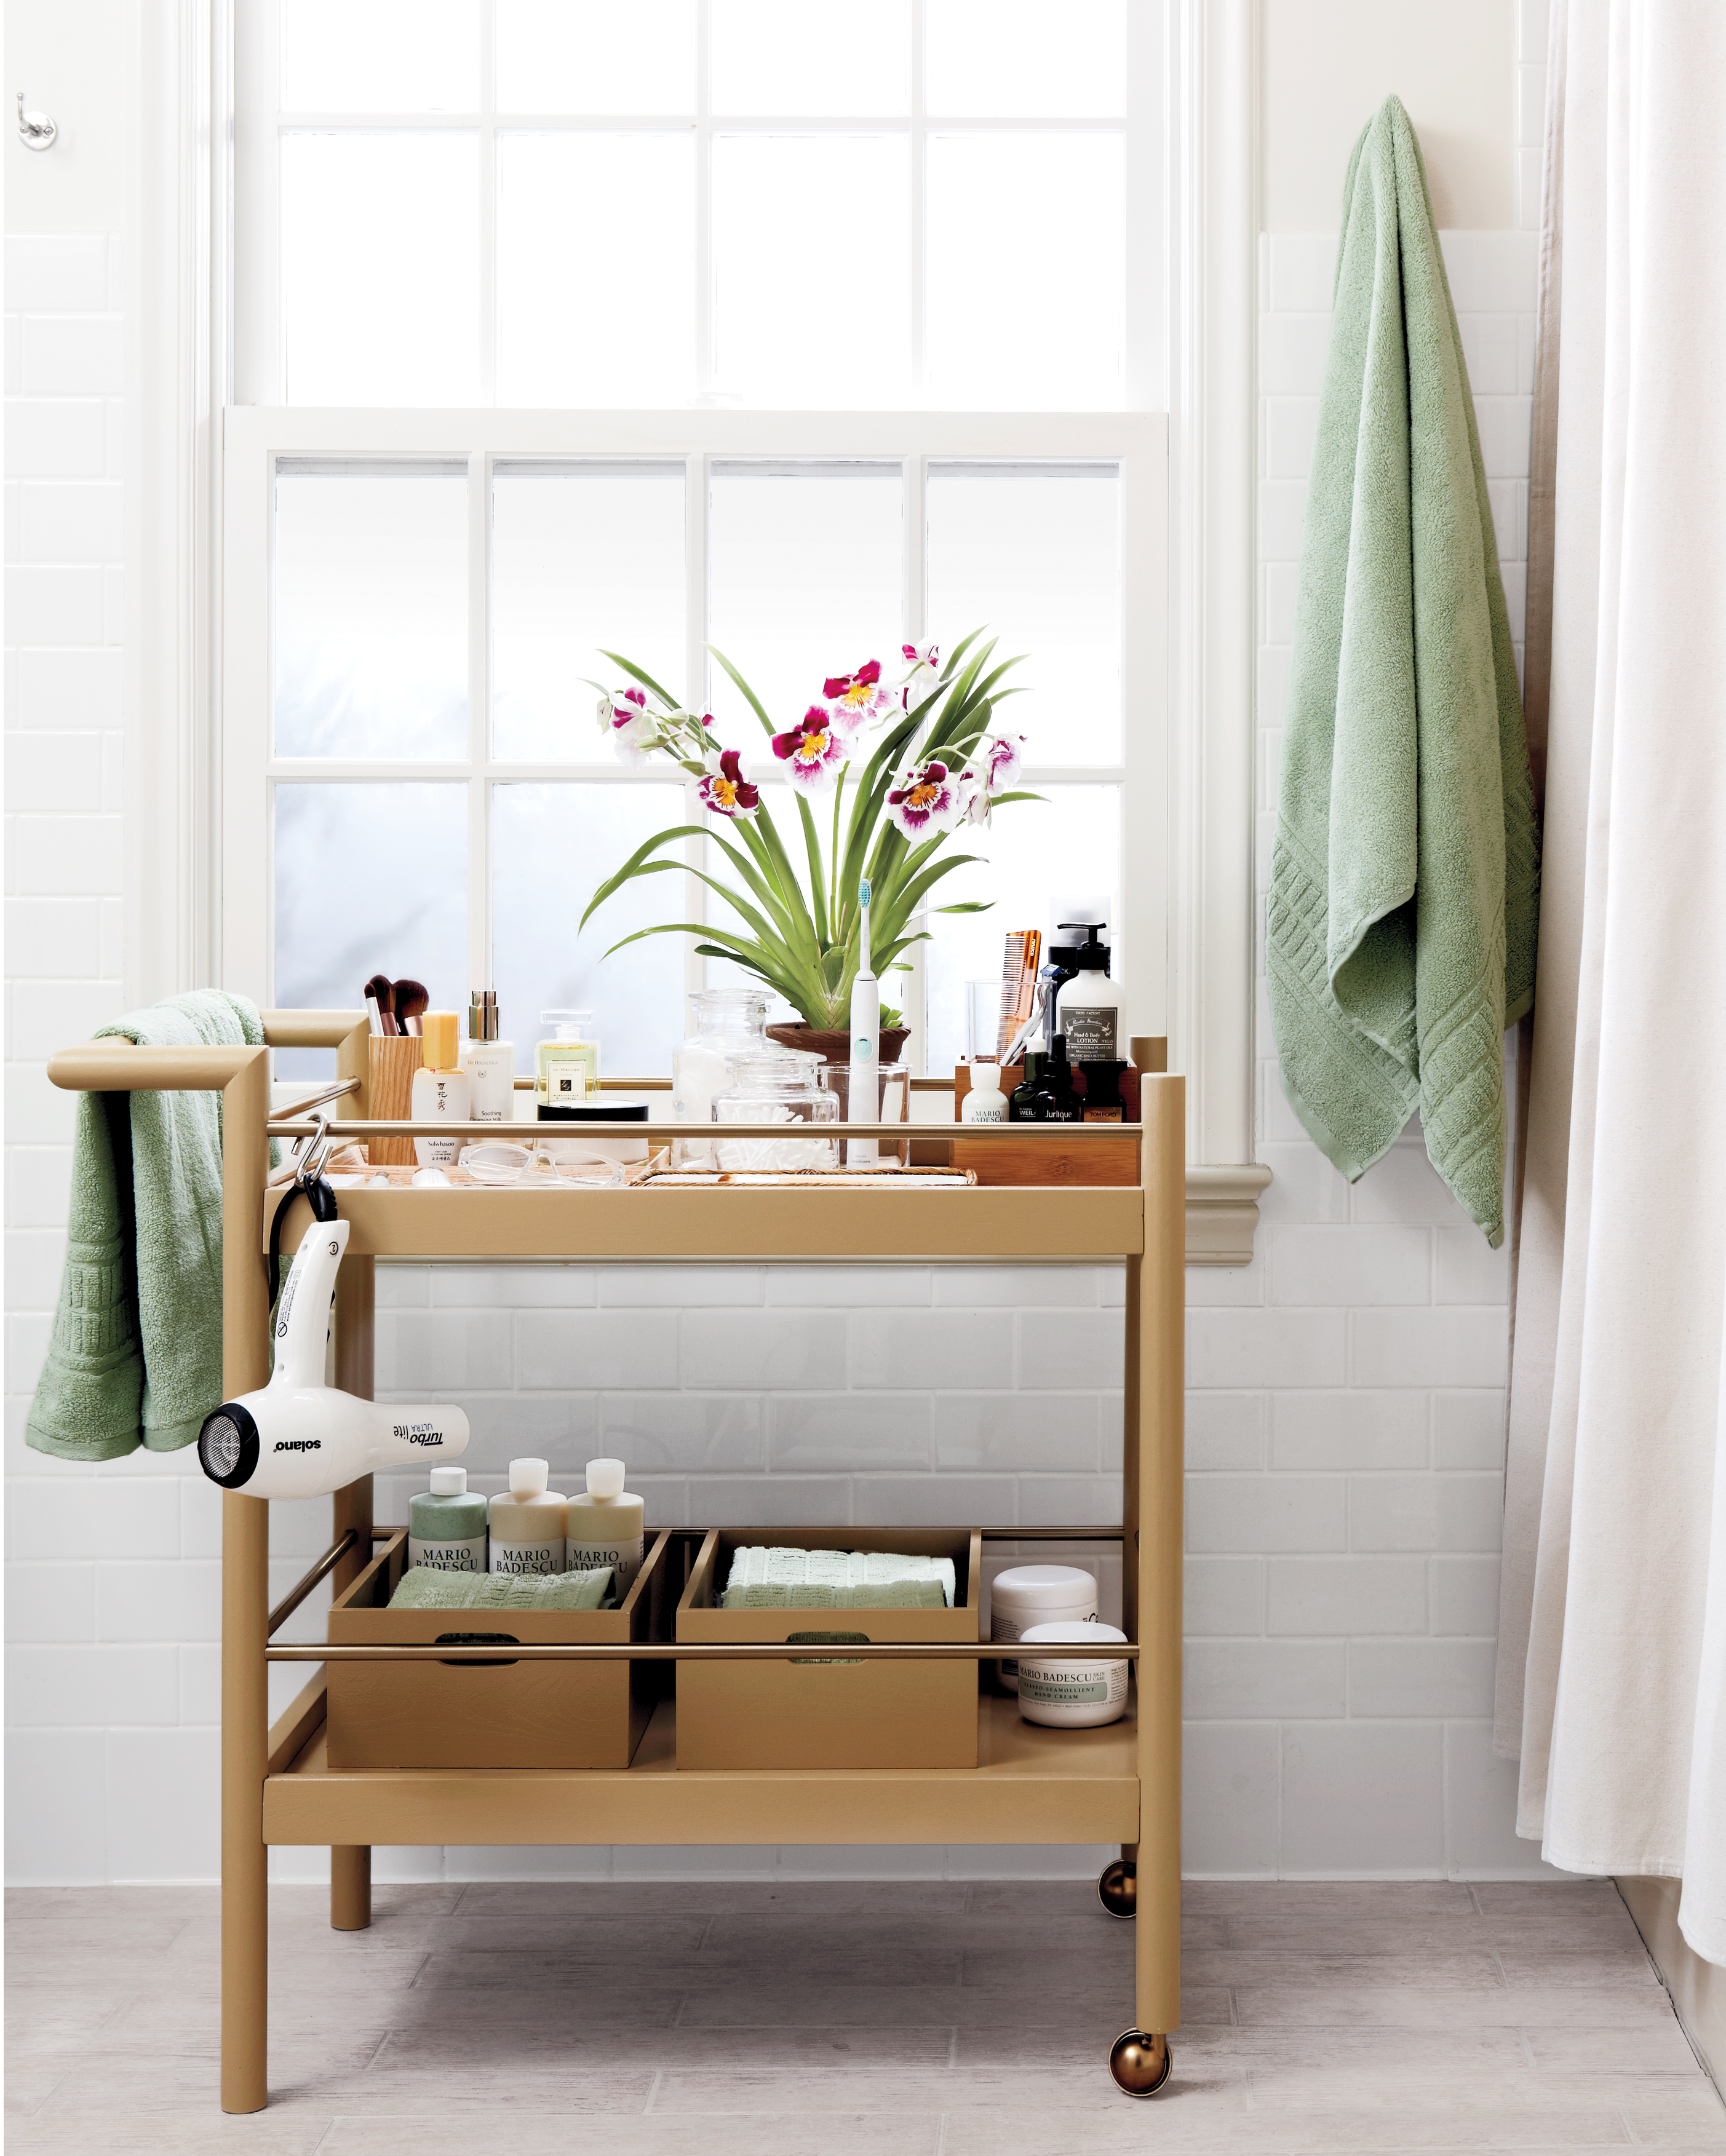 bathroom-storage-cart-v1-6182-d111382.jpg